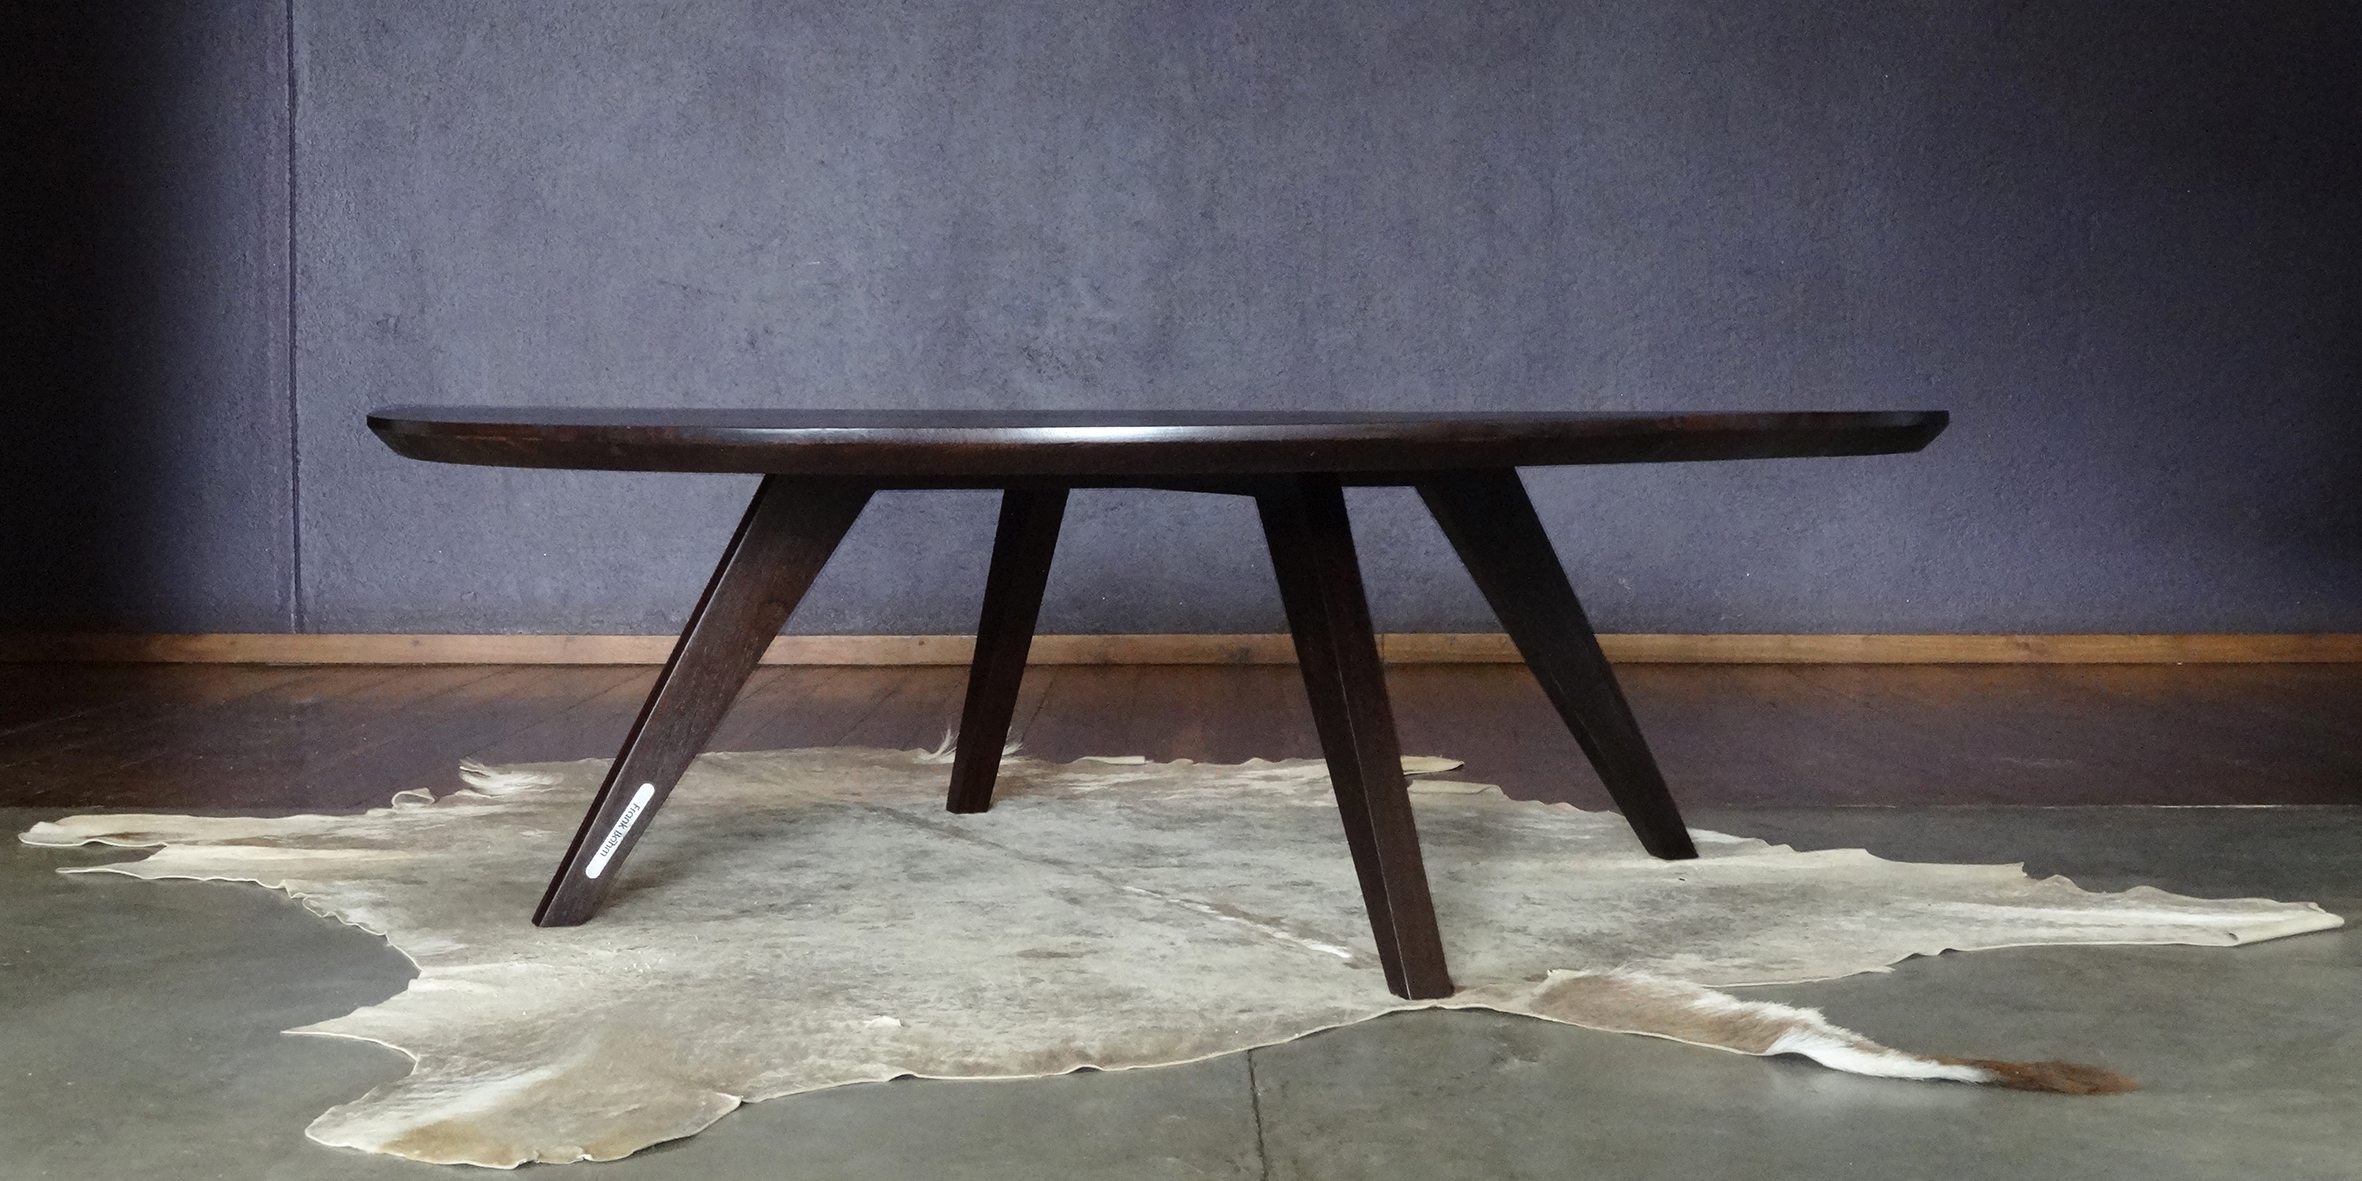 rylt coffee table, 1200 dia x 380 h, reclaimed wenge